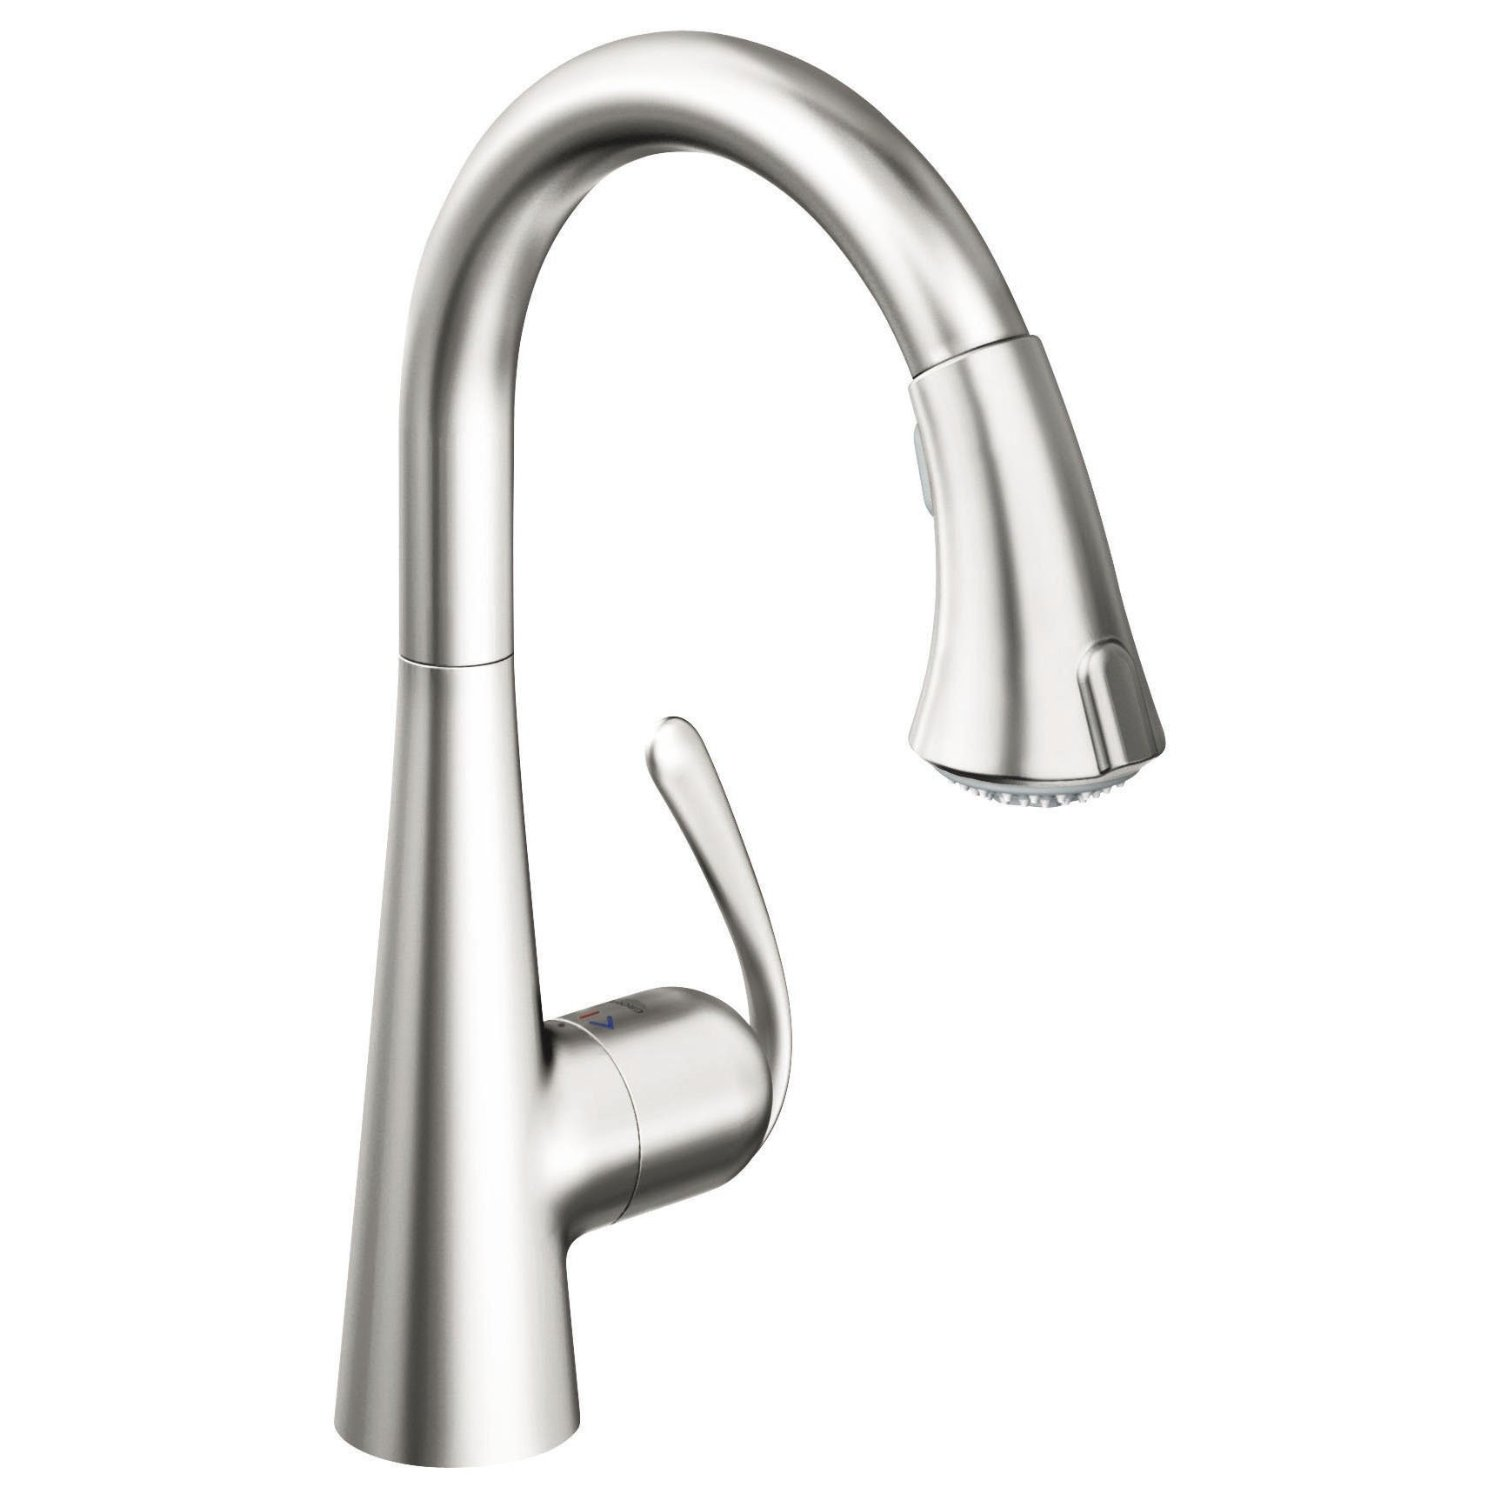 charming 32 298 SD0 Ladylux3 Main Sink Dual Spray Pull Down Kitchen faucet by grohe faucets for kitchen decor ideas